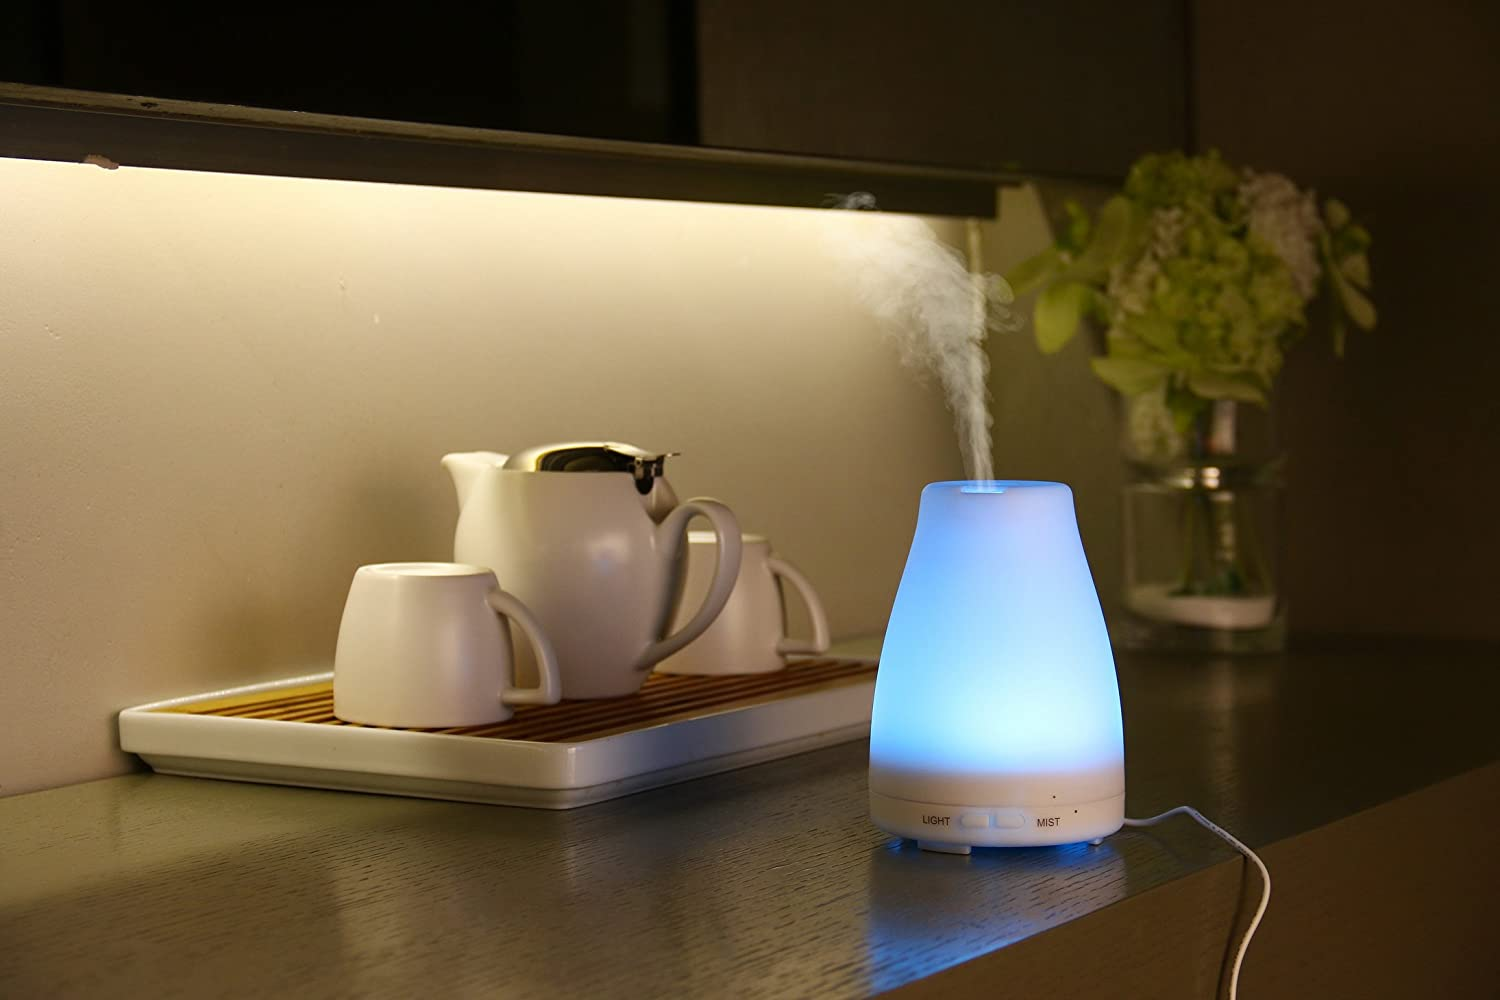 Essential Oil Diffuser, By Safiaz 100ml Aromatherapy Ultrasonic Cool Mist, Humidifier with Special 7 Color Changing LED Lights